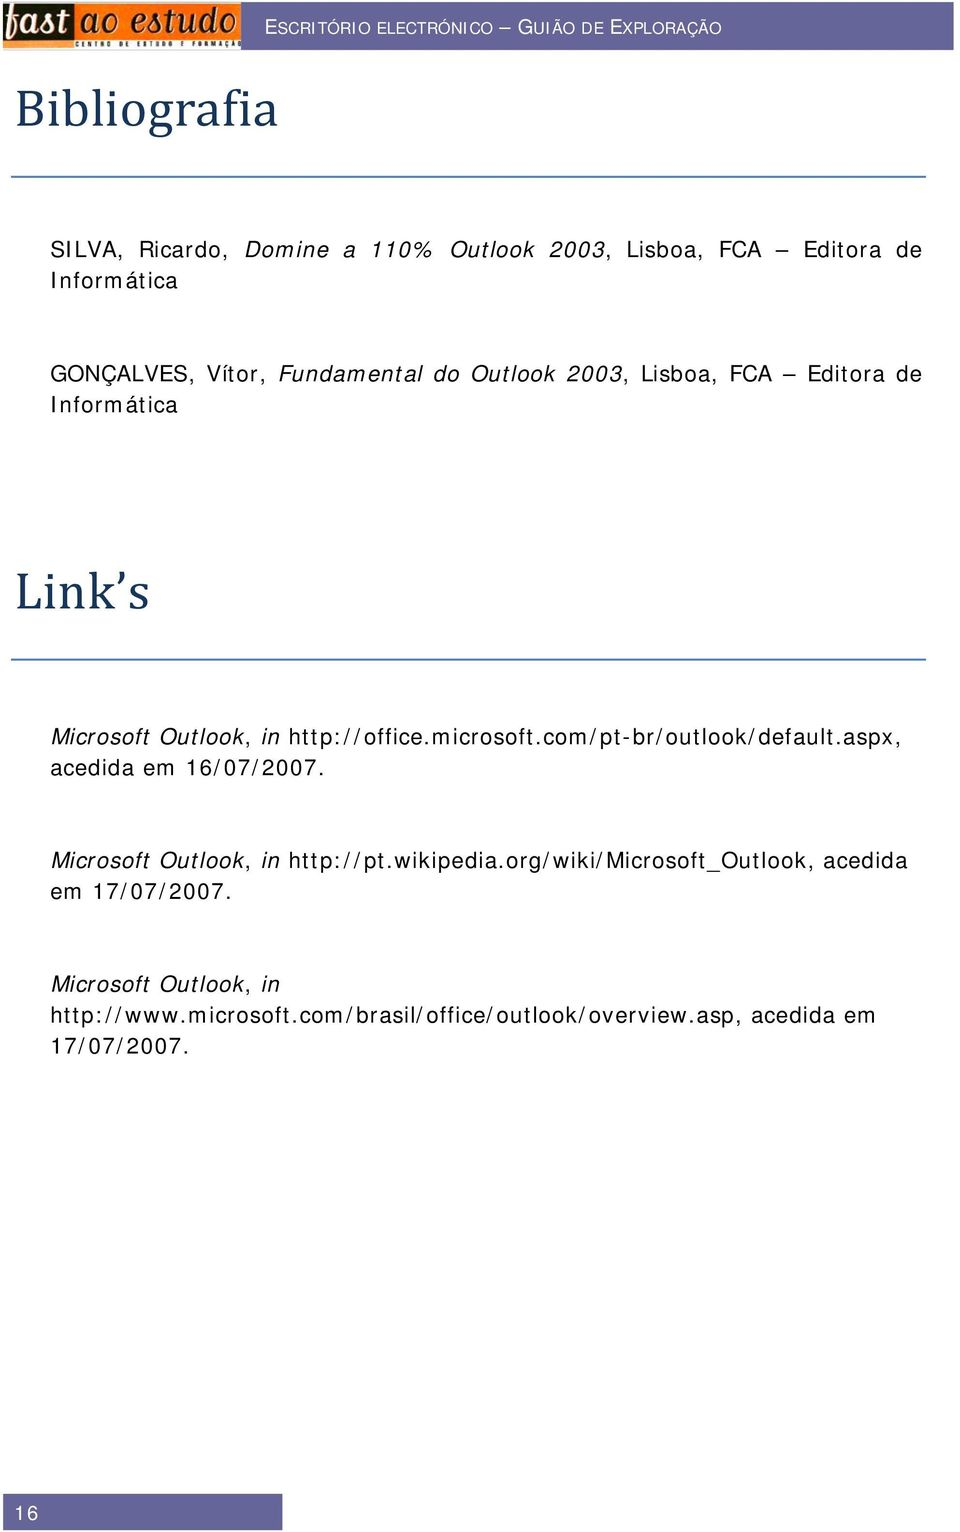 http://office.microsoft.com/pt-br/outlook/default.aspx, acedida em 16/07/2007. Microsoft Outlook, in http://pt.wikipedia.